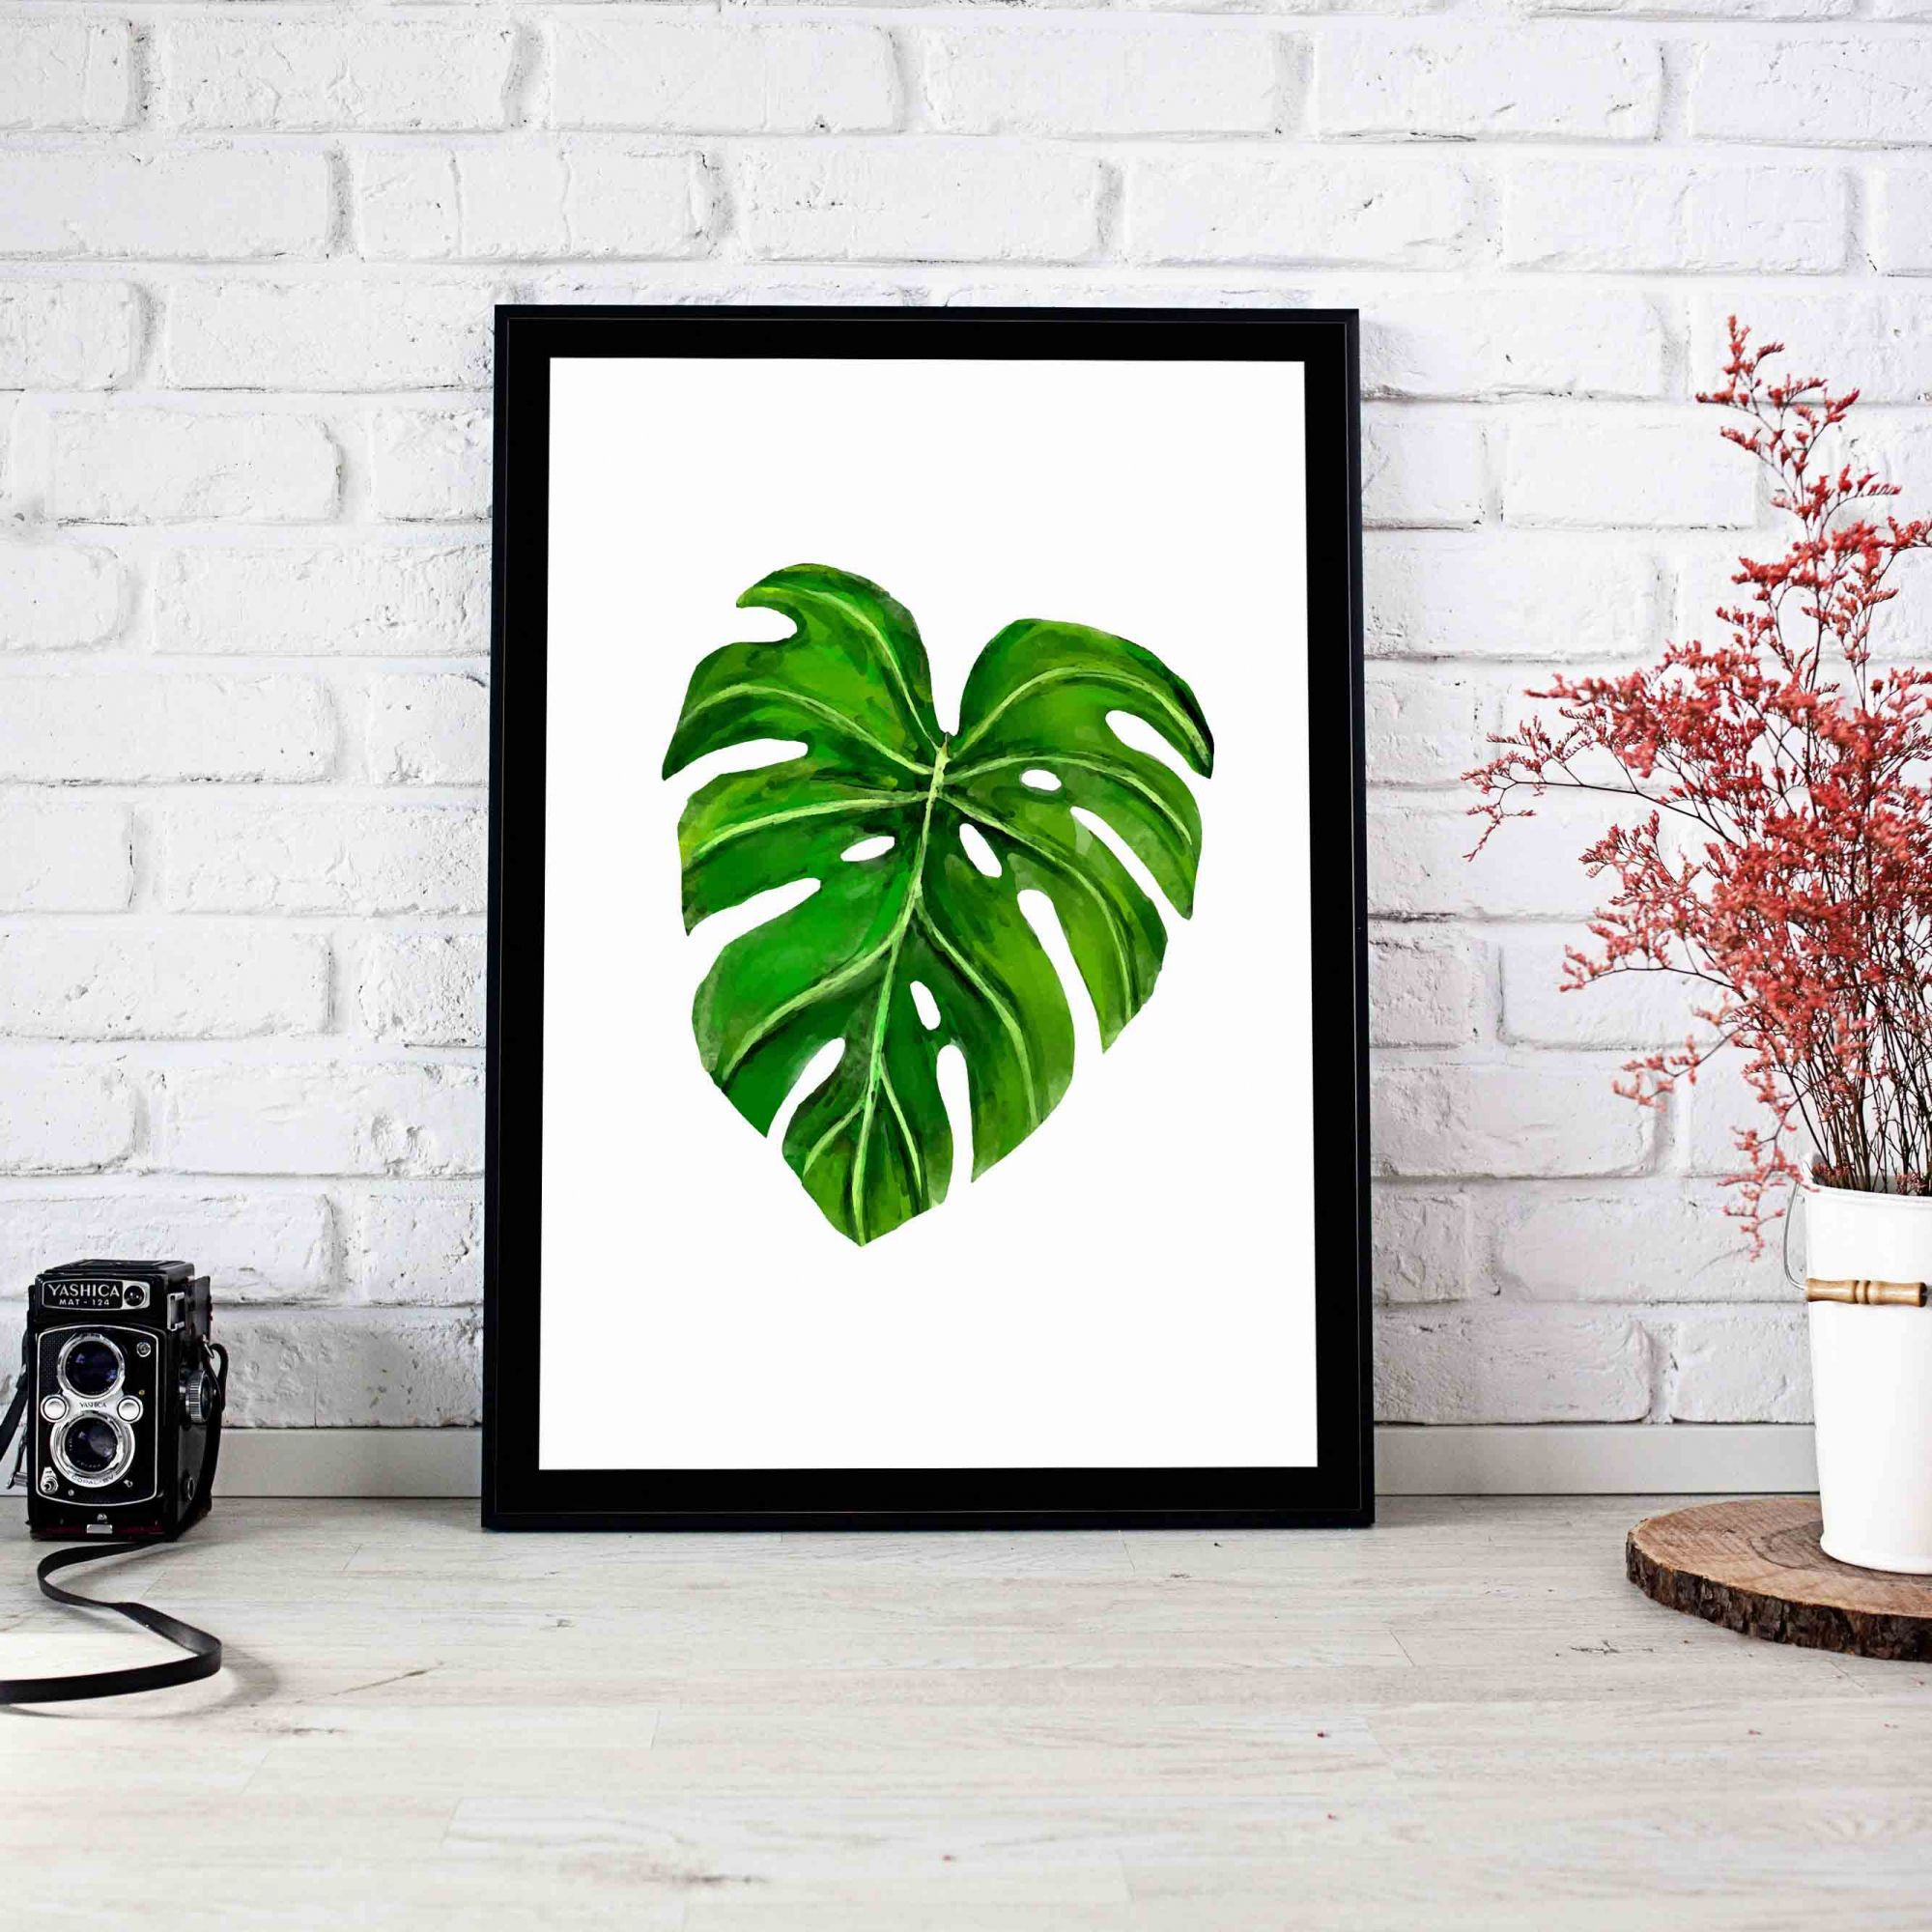 Quadro Decorativo Monstera  - TaColado